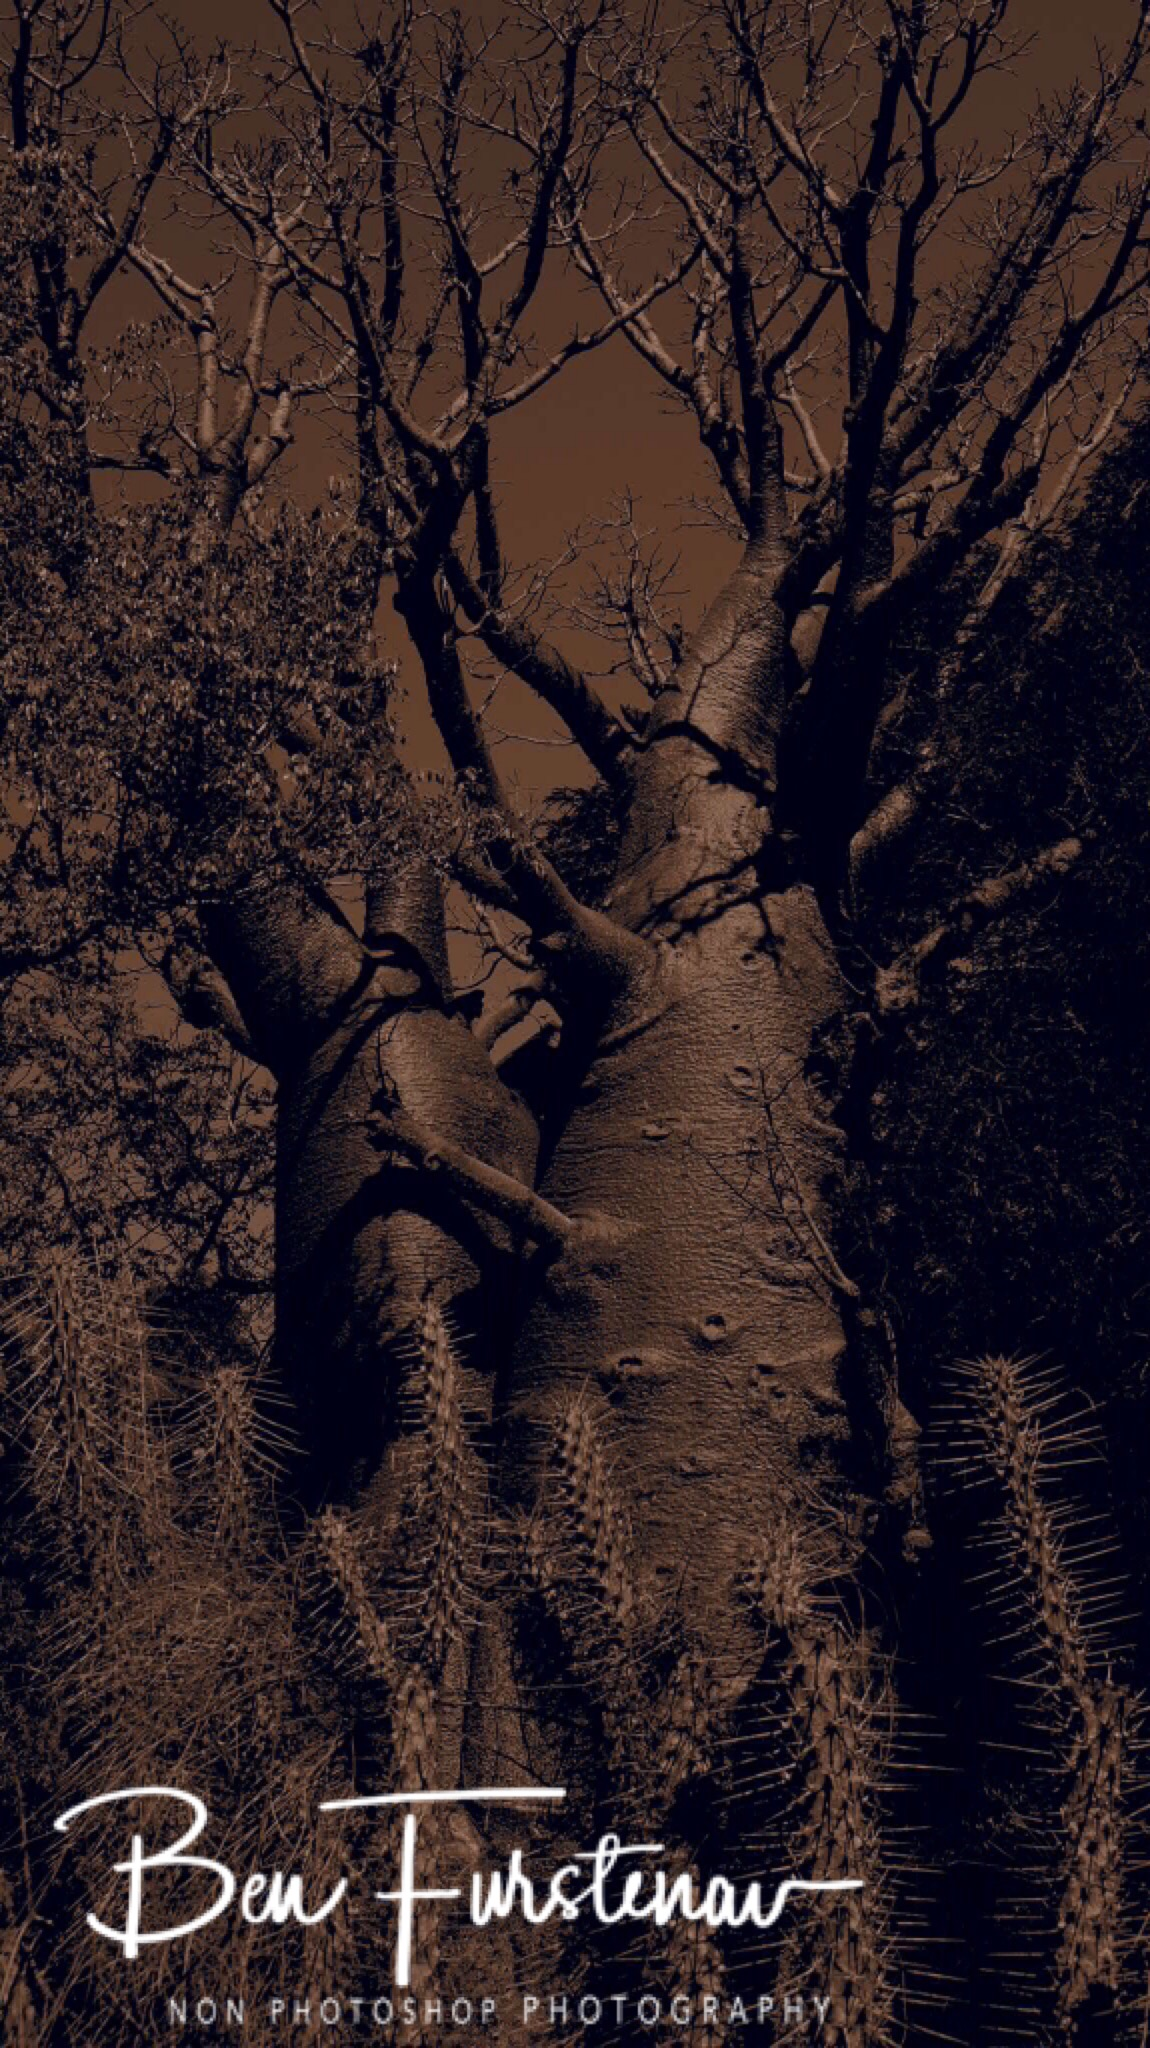 Baobab tree In spiky environment